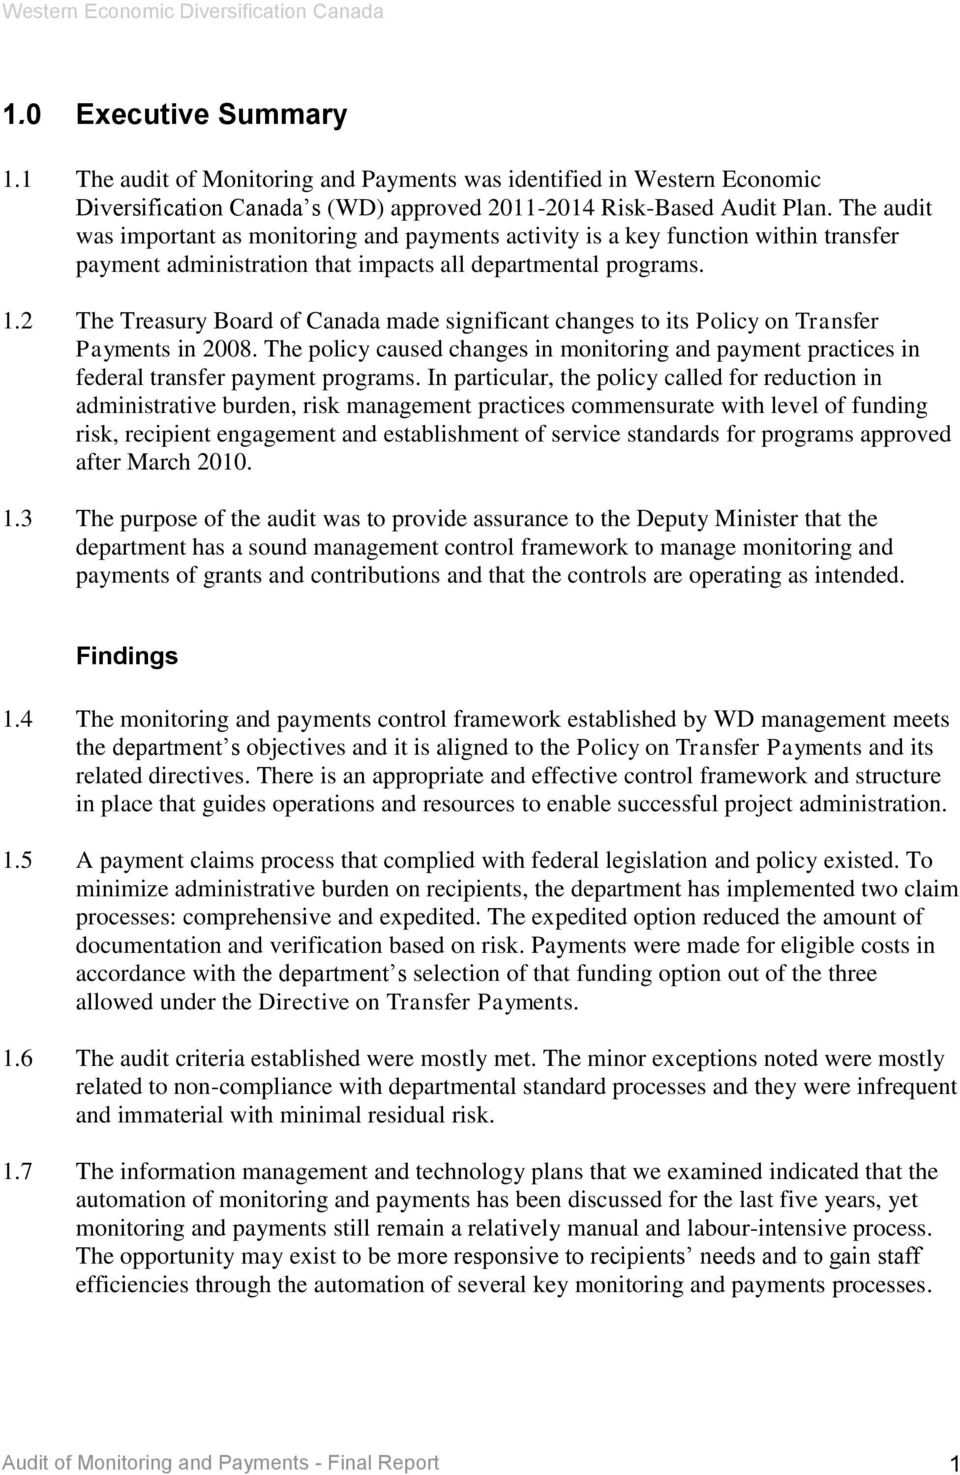 2 The Treasury Board of Canada made significant changes to its Policy on Transfer Payments in 2008. The policy caused changes in monitoring and payment practices in federal transfer payment programs.